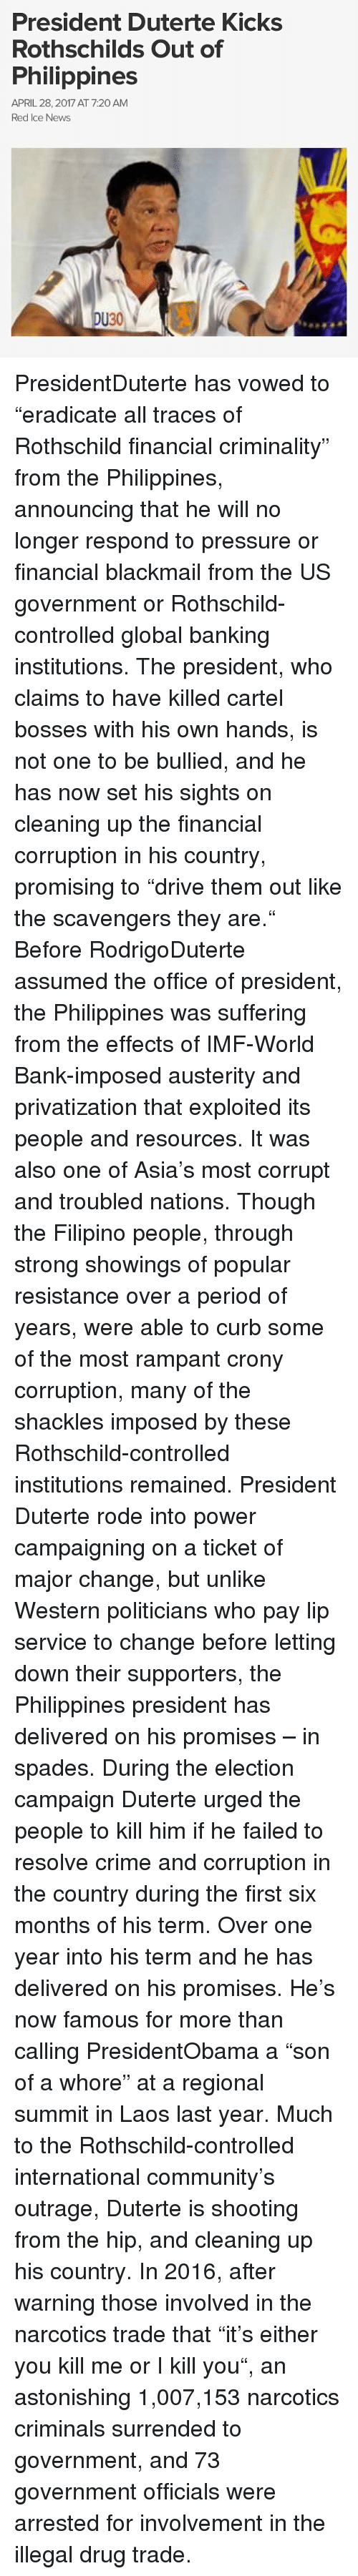 "Curbing: President Duterte Kicks  Rothschilds Out of  Philippines  APRIL 28, 2017 AT 7:20 AM  Red Ice News  DU30 PresidentDuterte has vowed to ""eradicate all traces of Rothschild financial criminality"" from the Philippines, announcing that he will no longer respond to pressure or financial blackmail from the US government or Rothschild-controlled global banking institutions. The president, who claims to have killed cartel bosses with his own hands, is not one to be bullied, and he has now set his sights on cleaning up the financial corruption in his country, promising to ""drive them out like the scavengers they are."" Before RodrigoDuterte assumed the office of president, the Philippines was suffering from the effects of IMF-World Bank-imposed austerity and privatization that exploited its people and resources. It was also one of Asia's most corrupt and troubled nations. Though the Filipino people, through strong showings of popular resistance over a period of years, were able to curb some of the most rampant crony corruption, many of the shackles imposed by these Rothschild-controlled institutions remained. President Duterte rode into power campaigning on a ticket of major change, but unlike Western politicians who pay lip service to change before letting down their supporters, the Philippines president has delivered on his promises – in spades. During the election campaign Duterte urged the people to kill him if he failed to resolve crime and corruption in the country during the first six months of his term. Over one year into his term and he has delivered on his promises. He's now famous for more than calling PresidentObama a ""son of a whore"" at a regional summit in Laos last year. Much to the Rothschild-controlled international community's outrage, Duterte is shooting from the hip, and cleaning up his country. In 2016, after warning those involved in the narcotics trade that ""it's either you kill me or I kill you"", an astonishing 1,007,153 narcotics criminals surrended to government, and 73 government officials were arrested for involvement in the illegal drug trade."